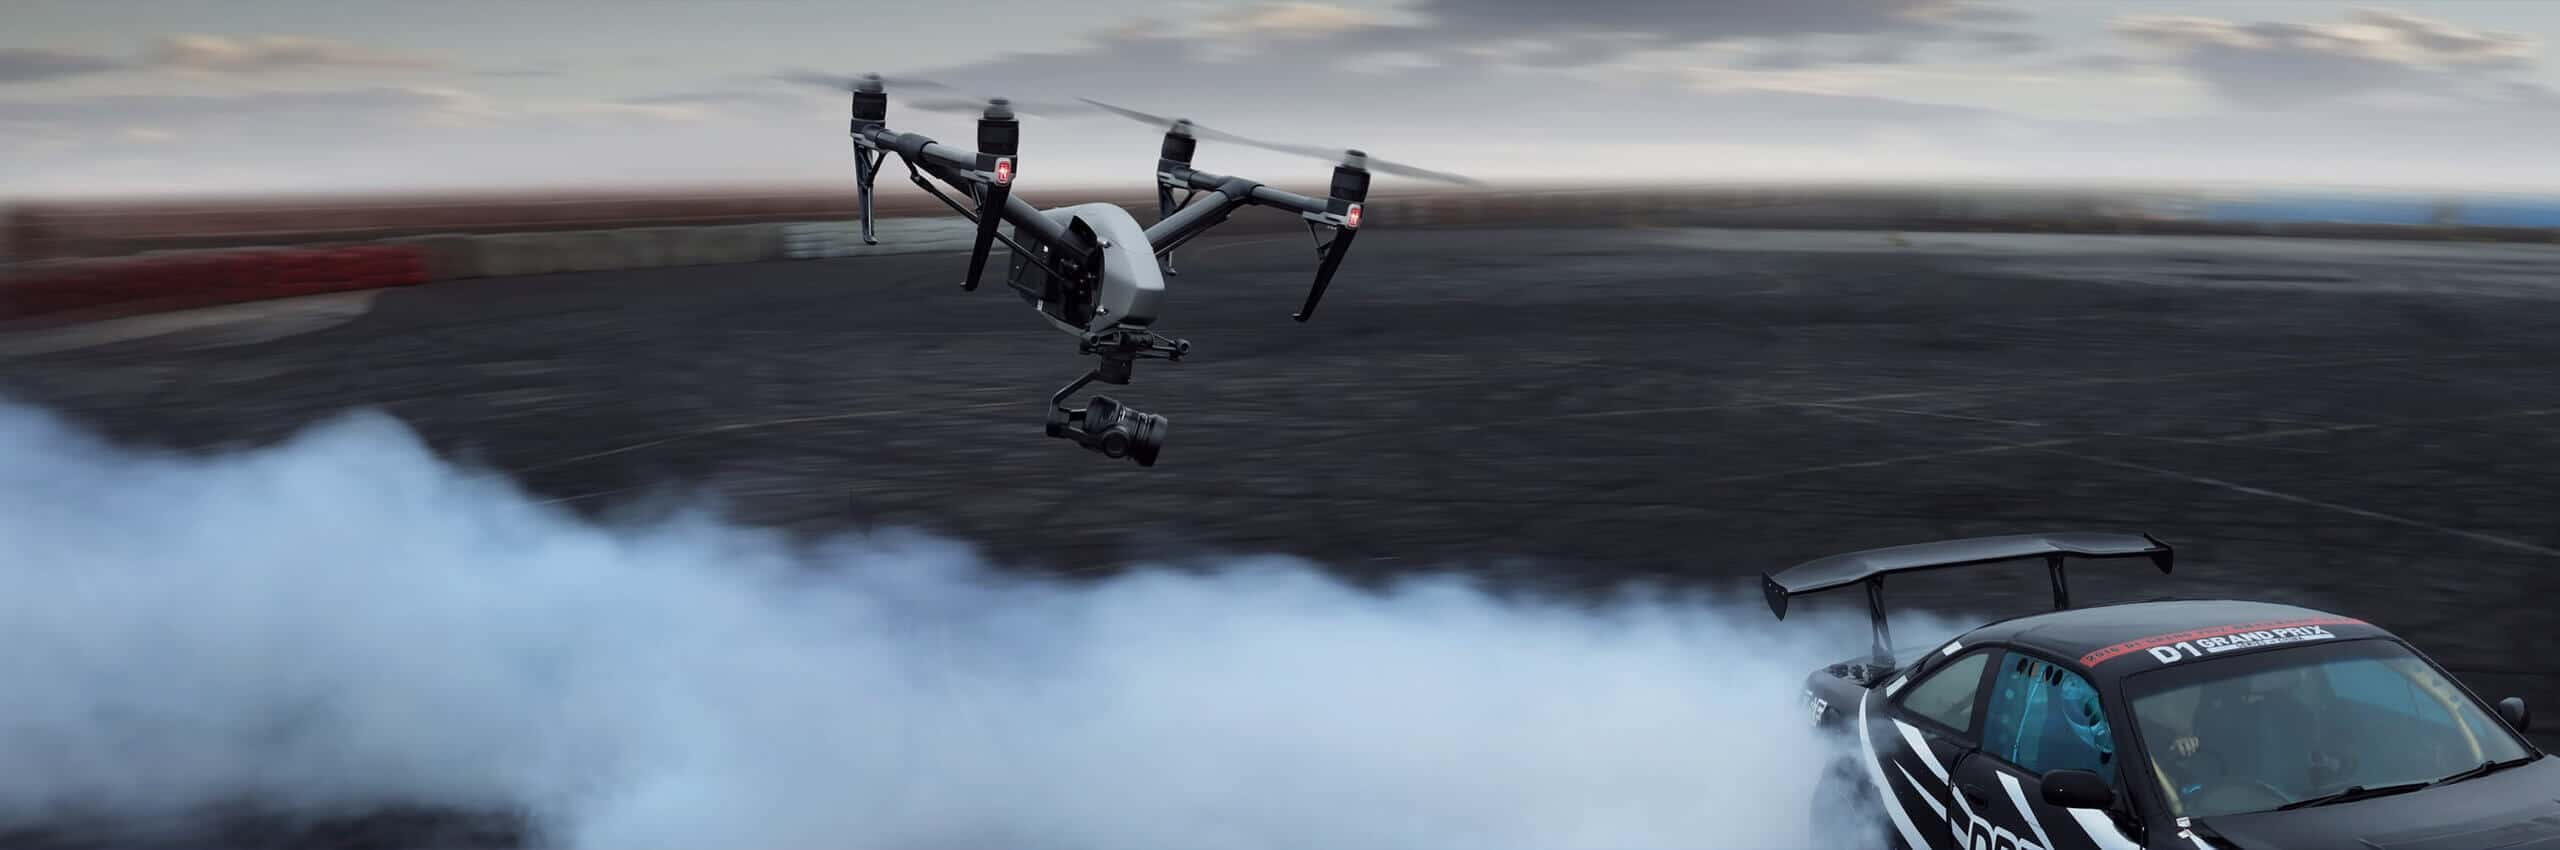 DJI Inspire 2 Cinematic Vision